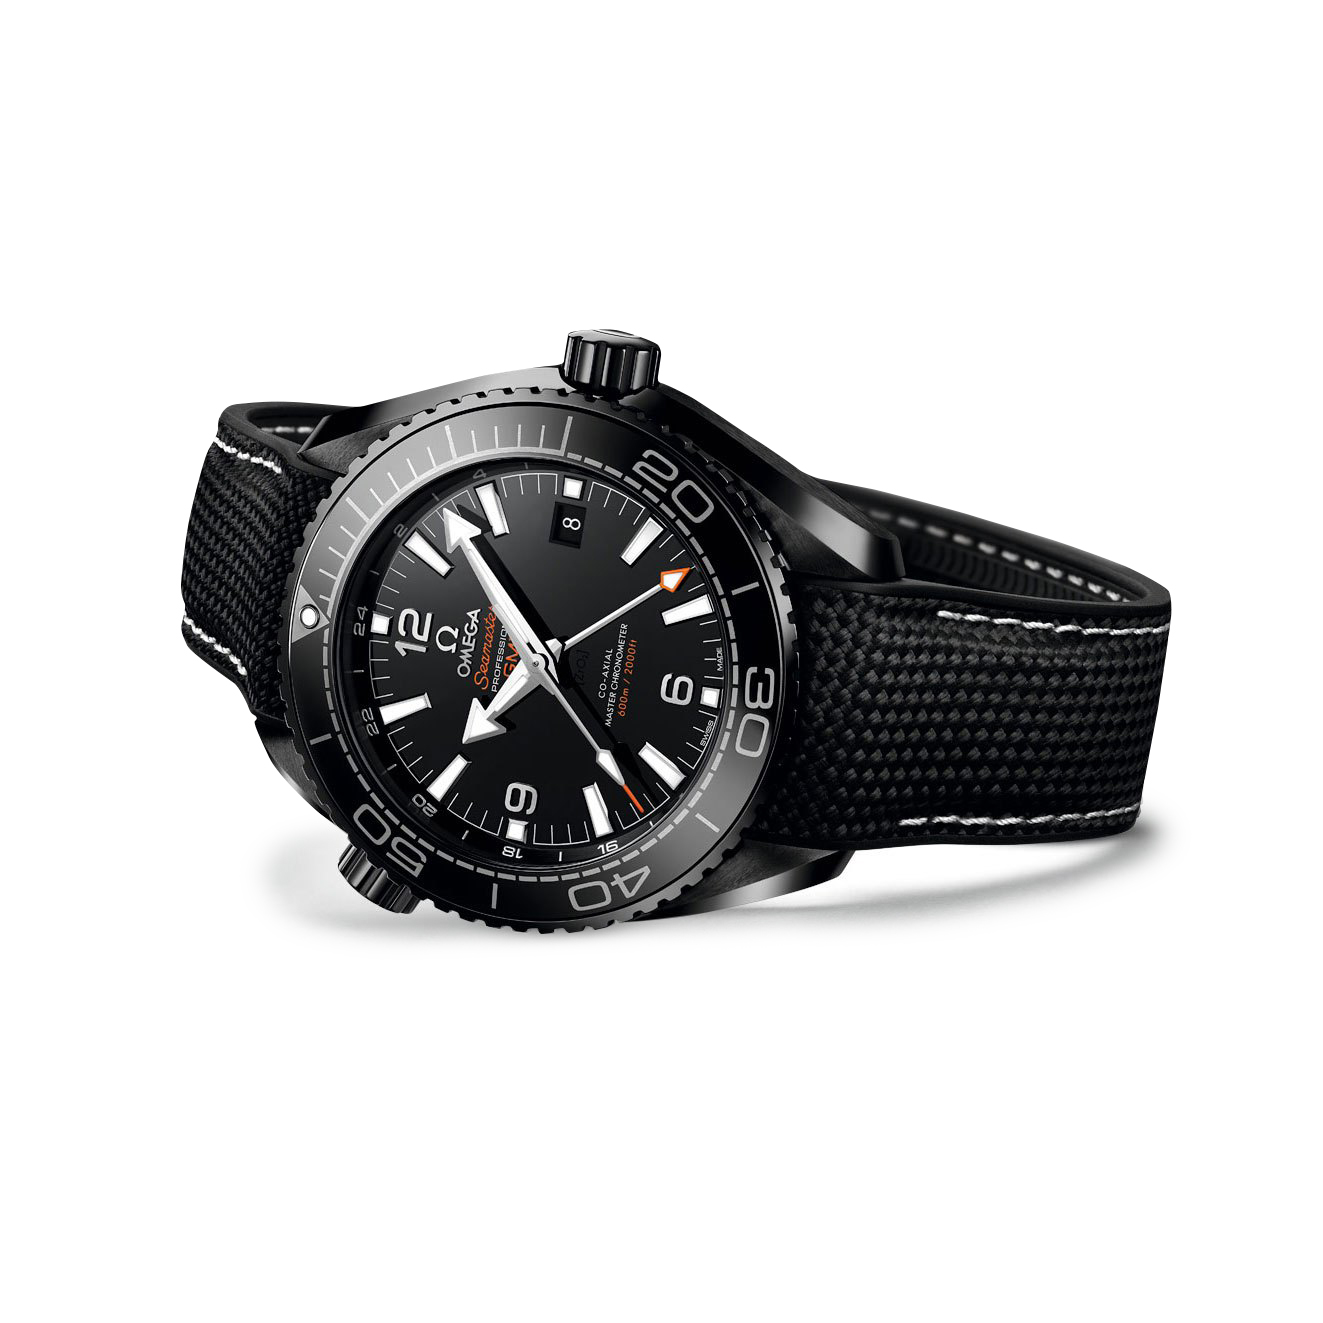 "OMEGA Seamaster Planet Ocean Master Chronometer ""Deep Black"" 600M"